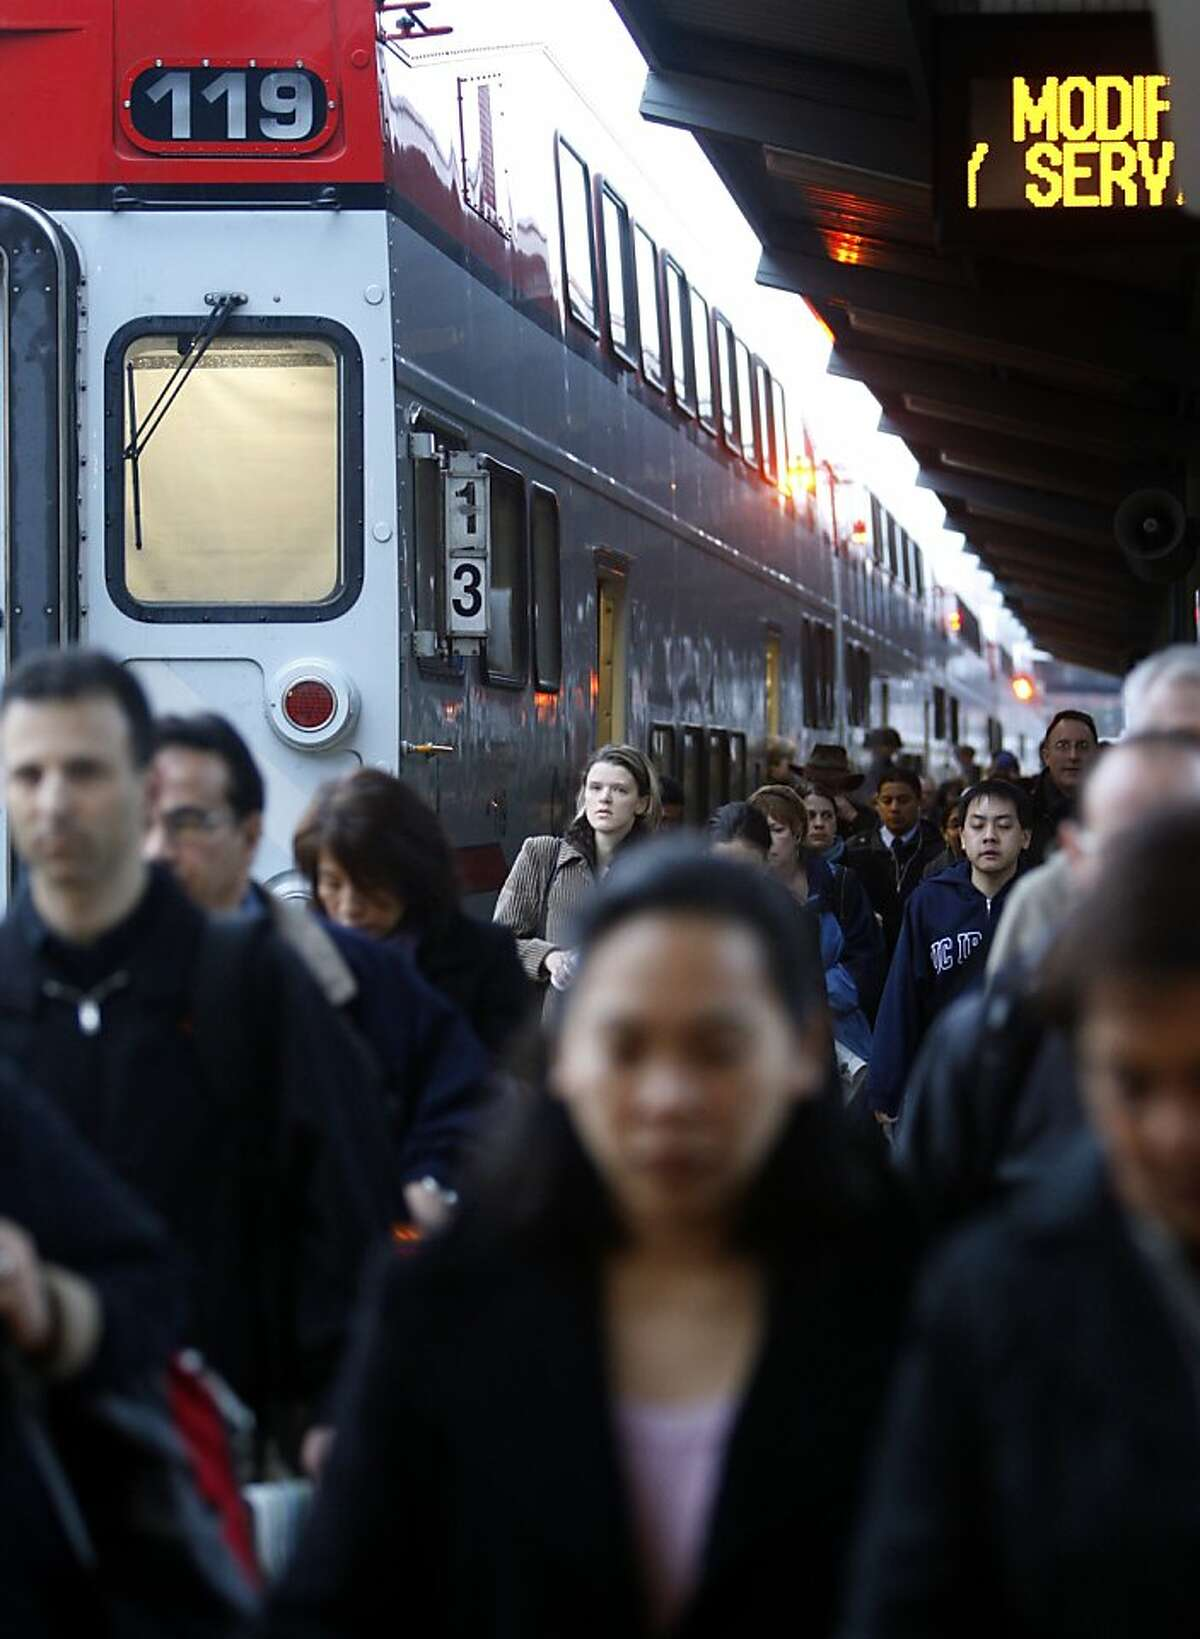 Commuters arrive on a Baby Bullet train at the Caltrain station in San Francisco, Calif., on Wednesday, Dec. 22, 2010. Caltrain will start operating the Baby Bullet express service on weekends beginning Jan. 1 for a trial period.